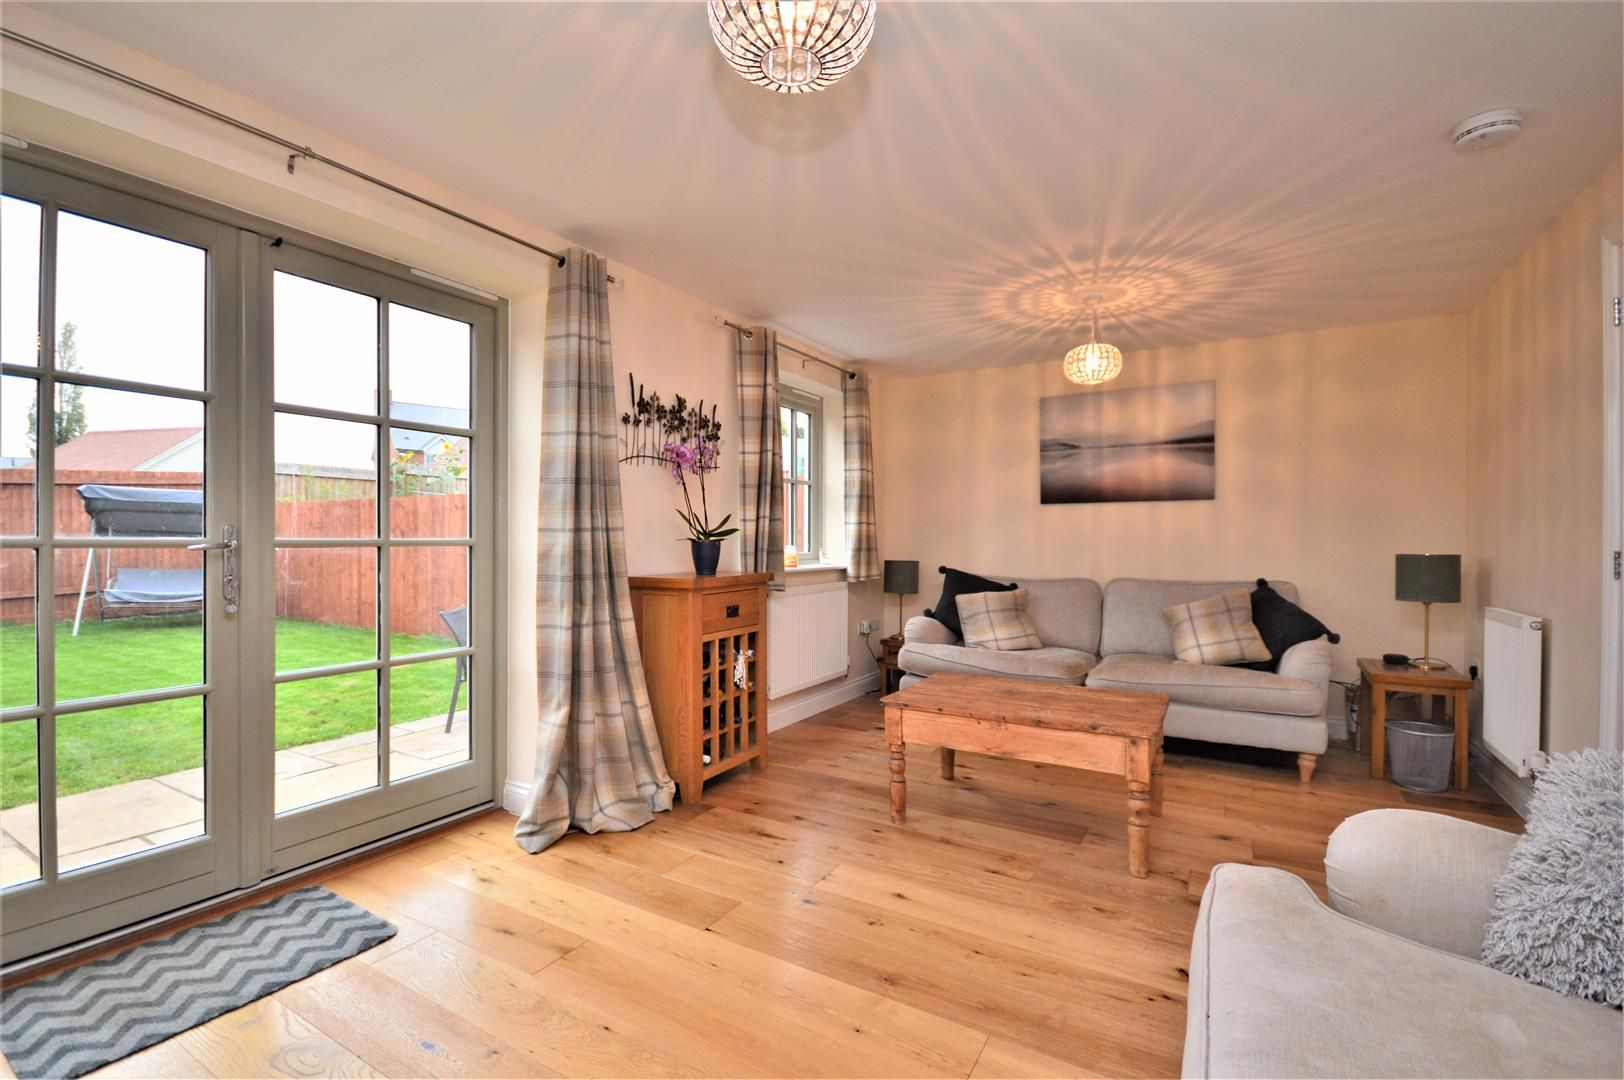 3 bed semi-detached for sale in Bodenham 3